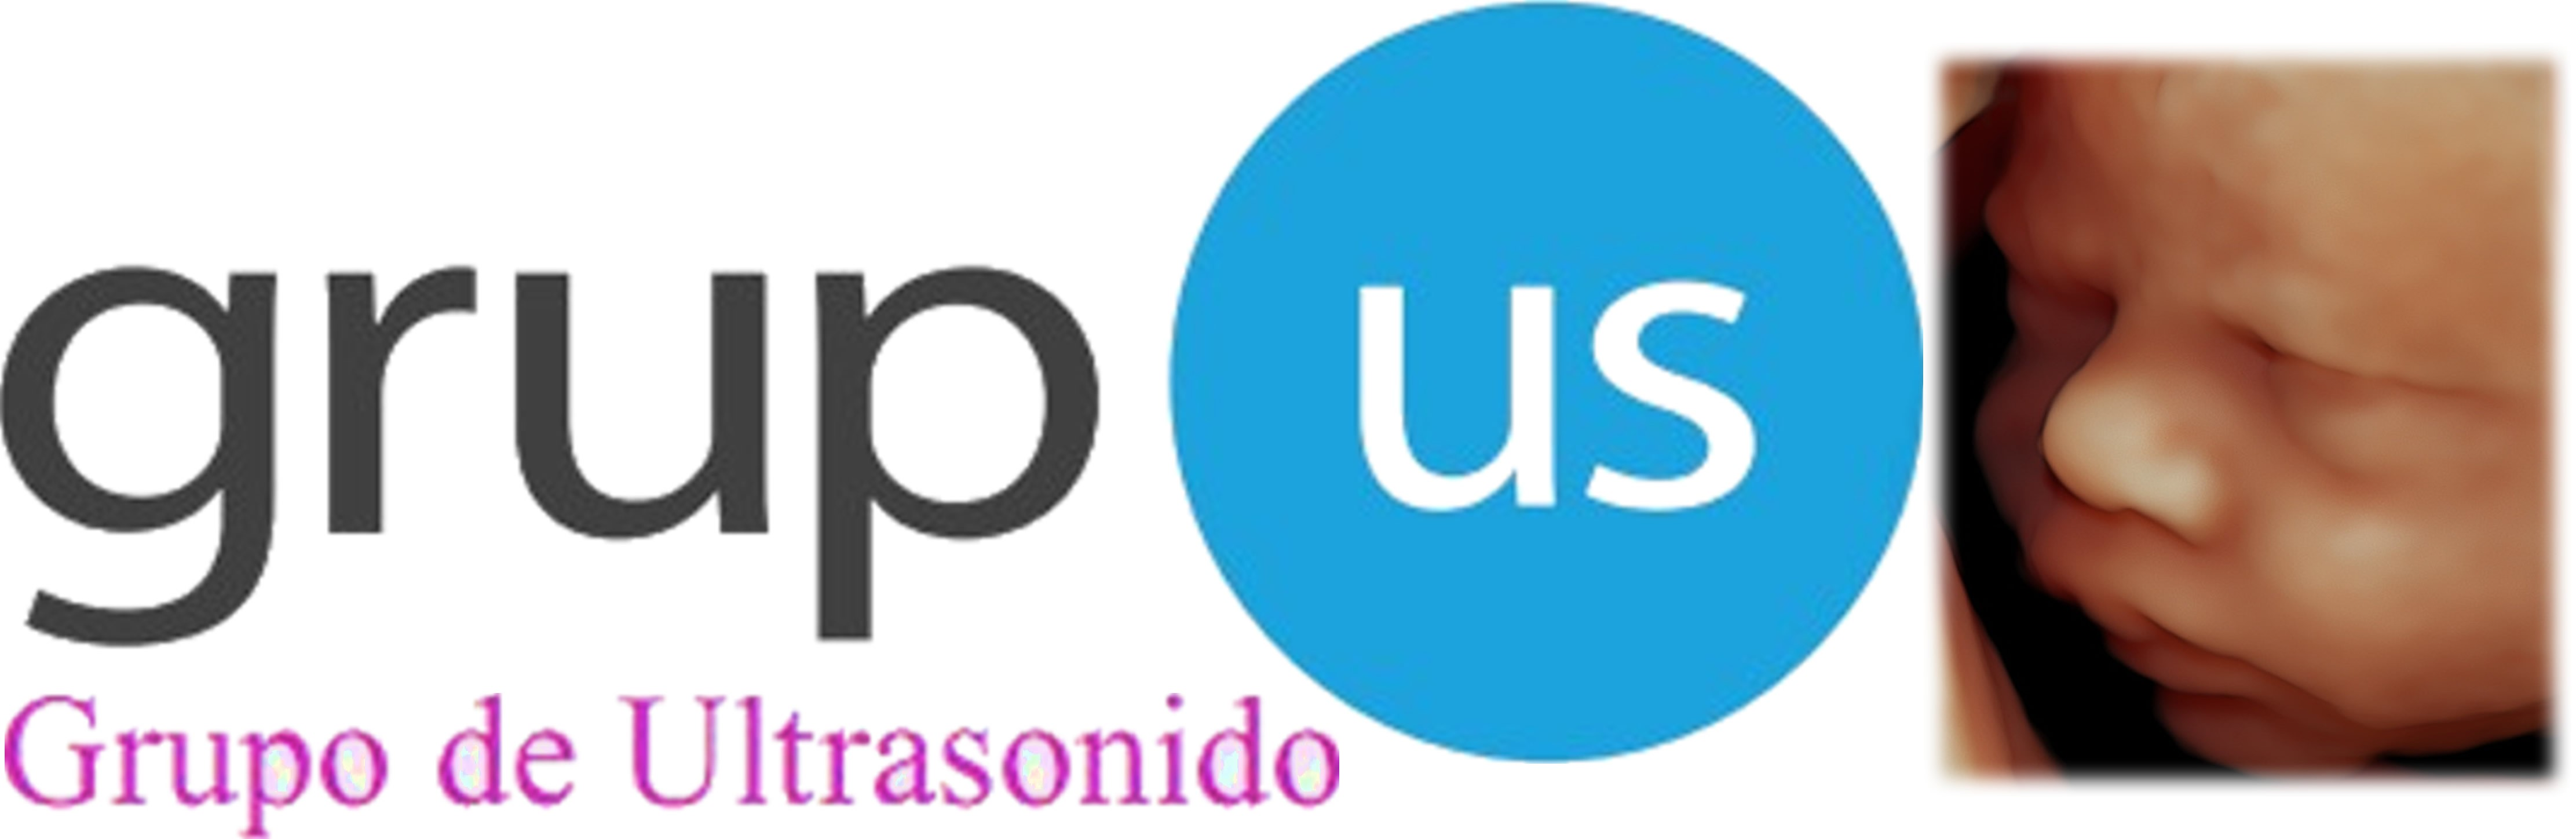 Grupo de Ultrasonido